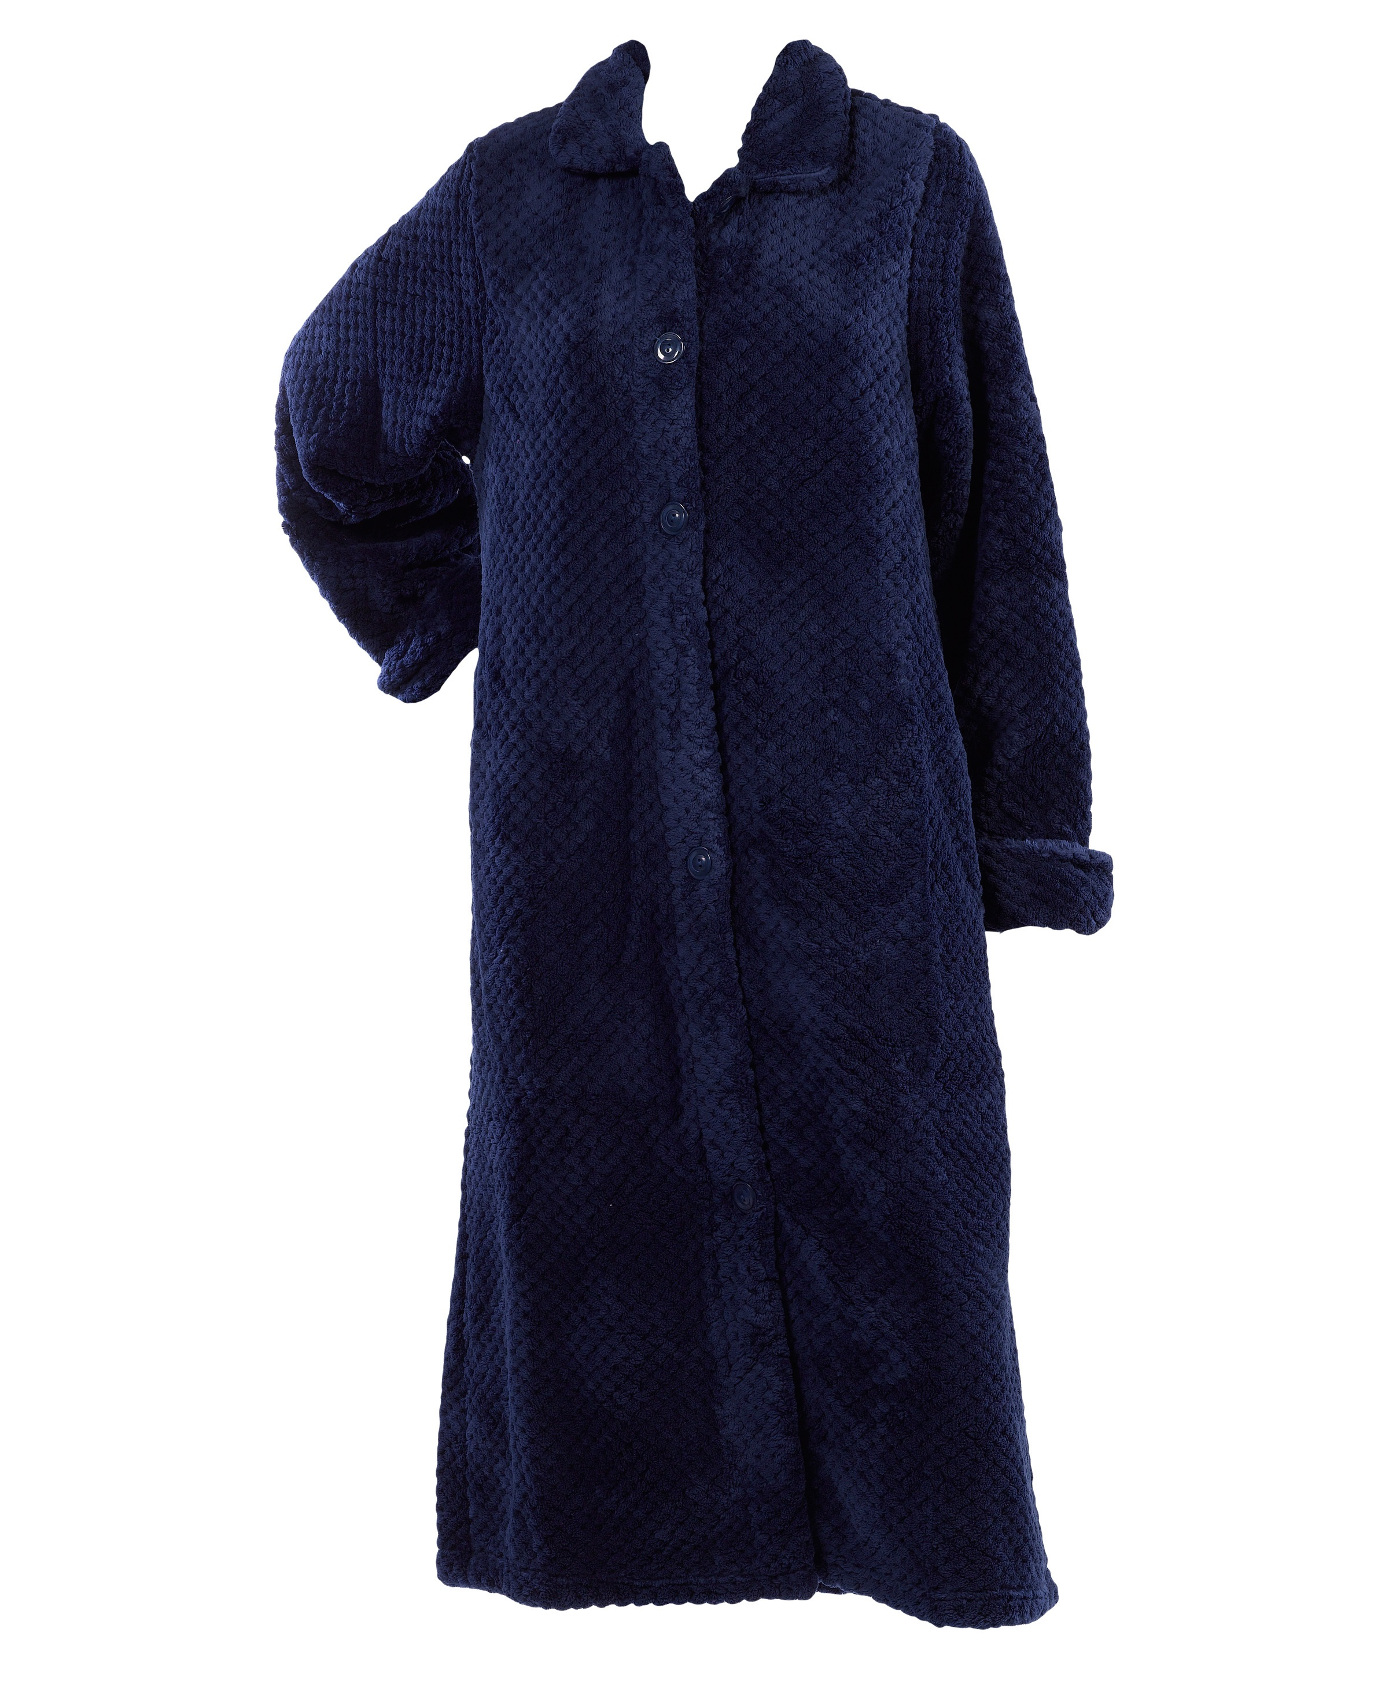 Womens Slenderella Bath Robe Button Up Soft Waffle Fleece ...